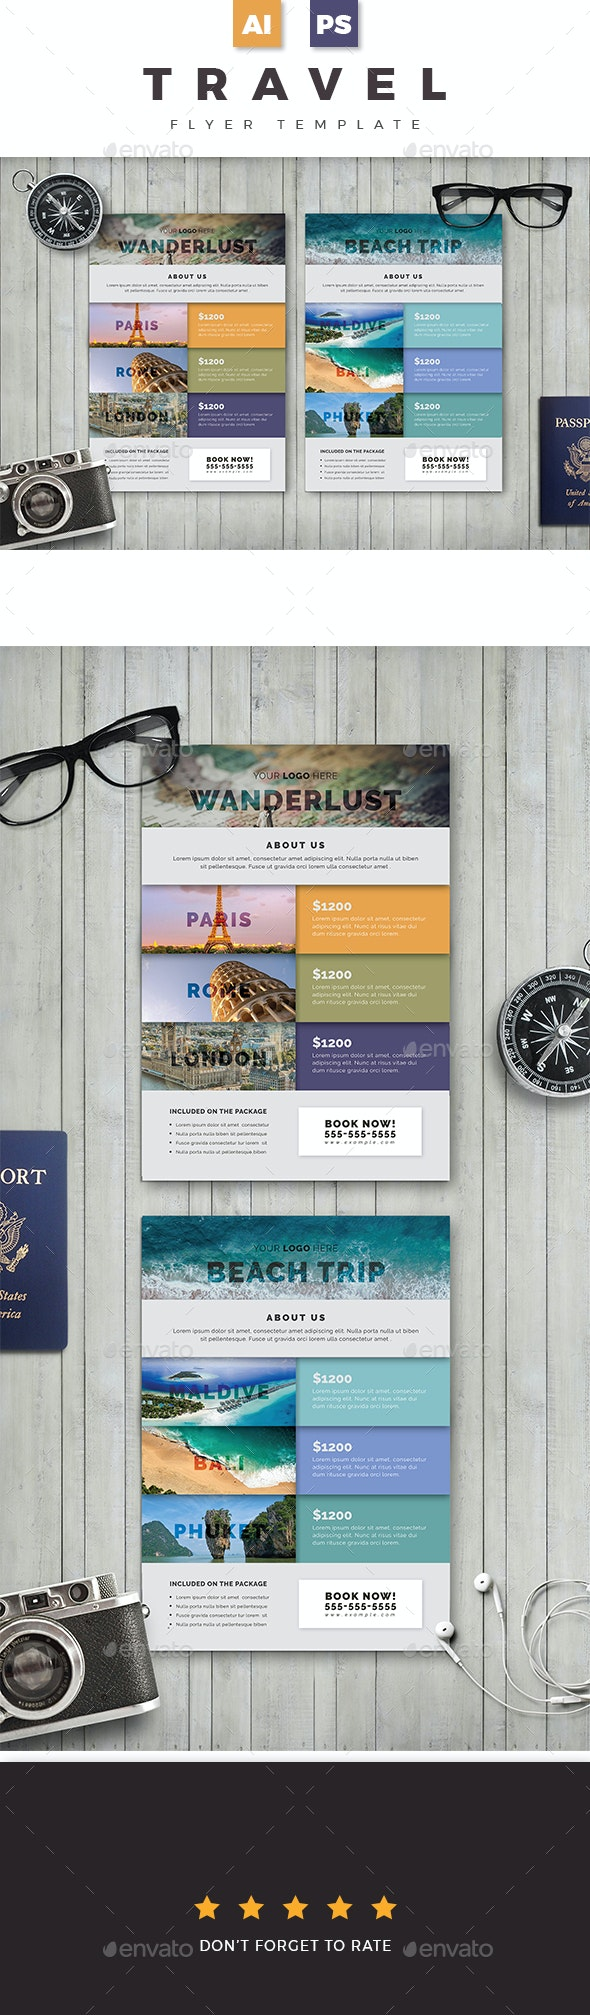 Travel Flyer 02 - Holidays Events